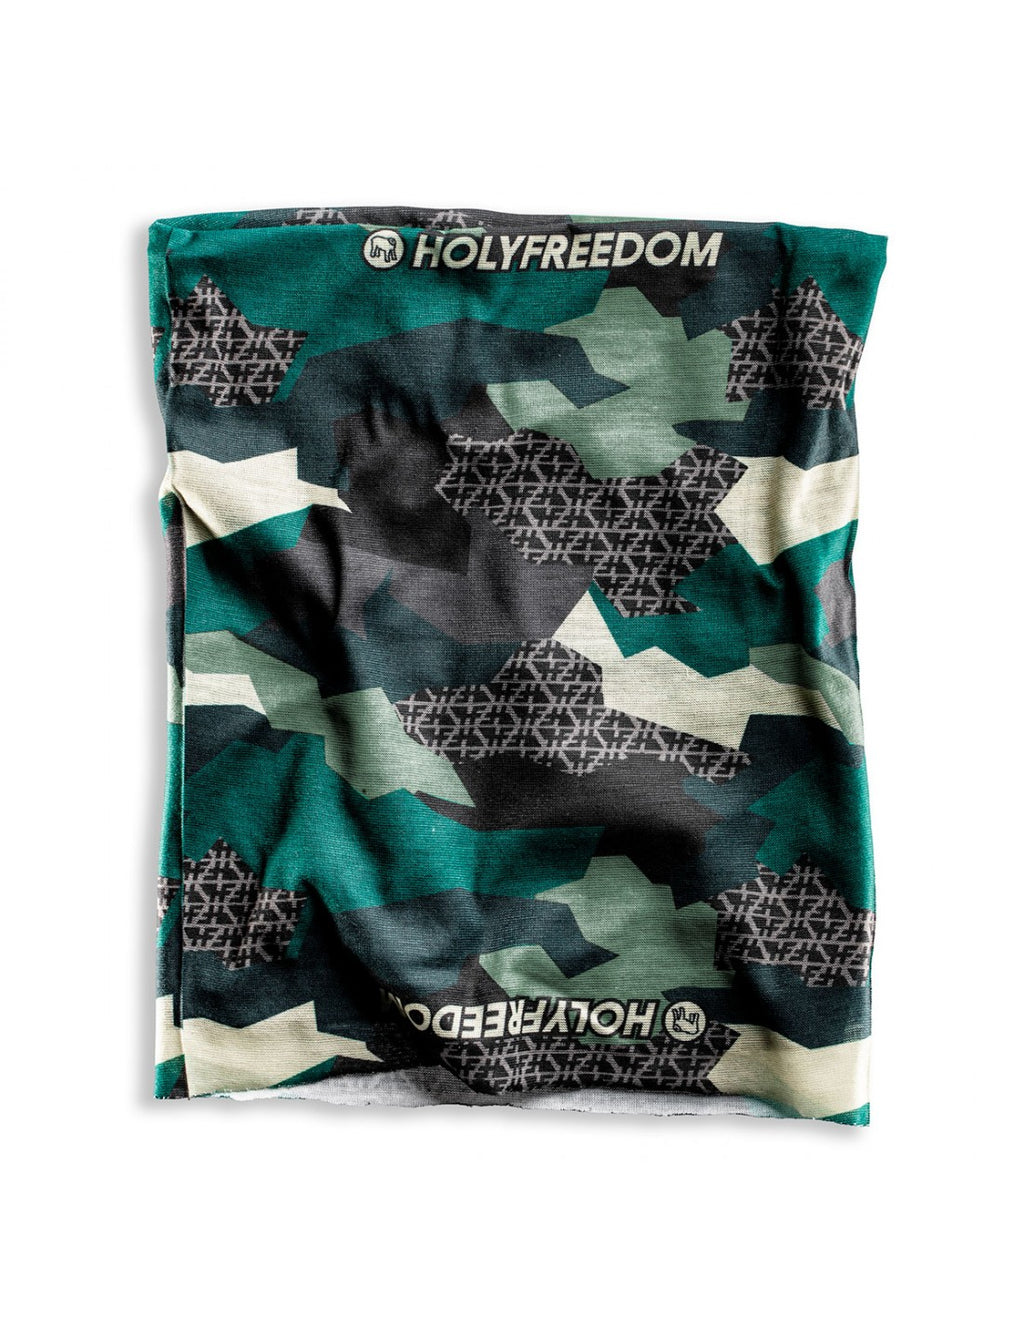 Holy Freedom Black Hawk Polar Bandana Tube